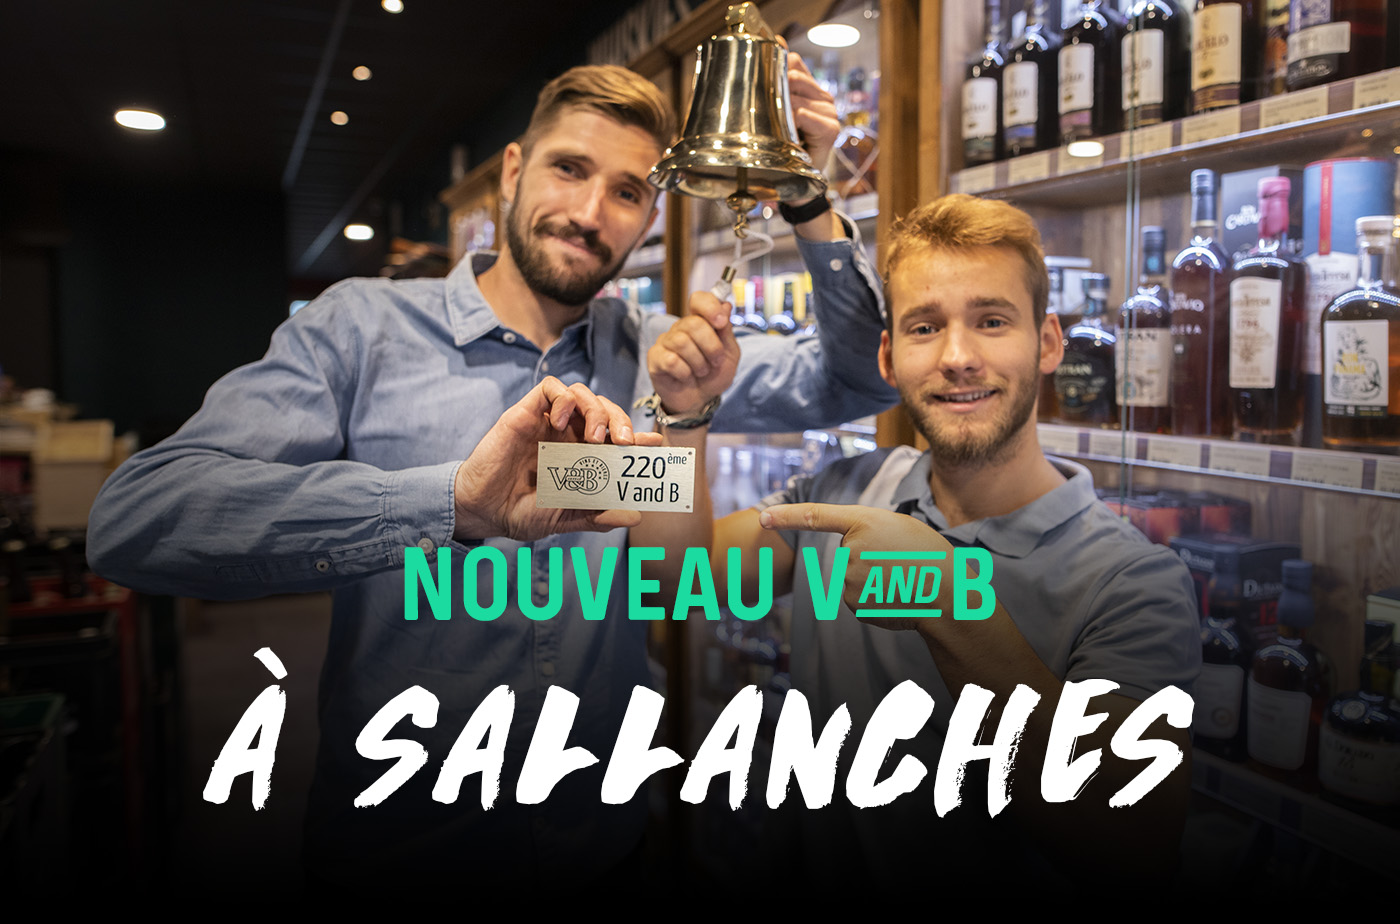 nouveau magasin V and B sallanches